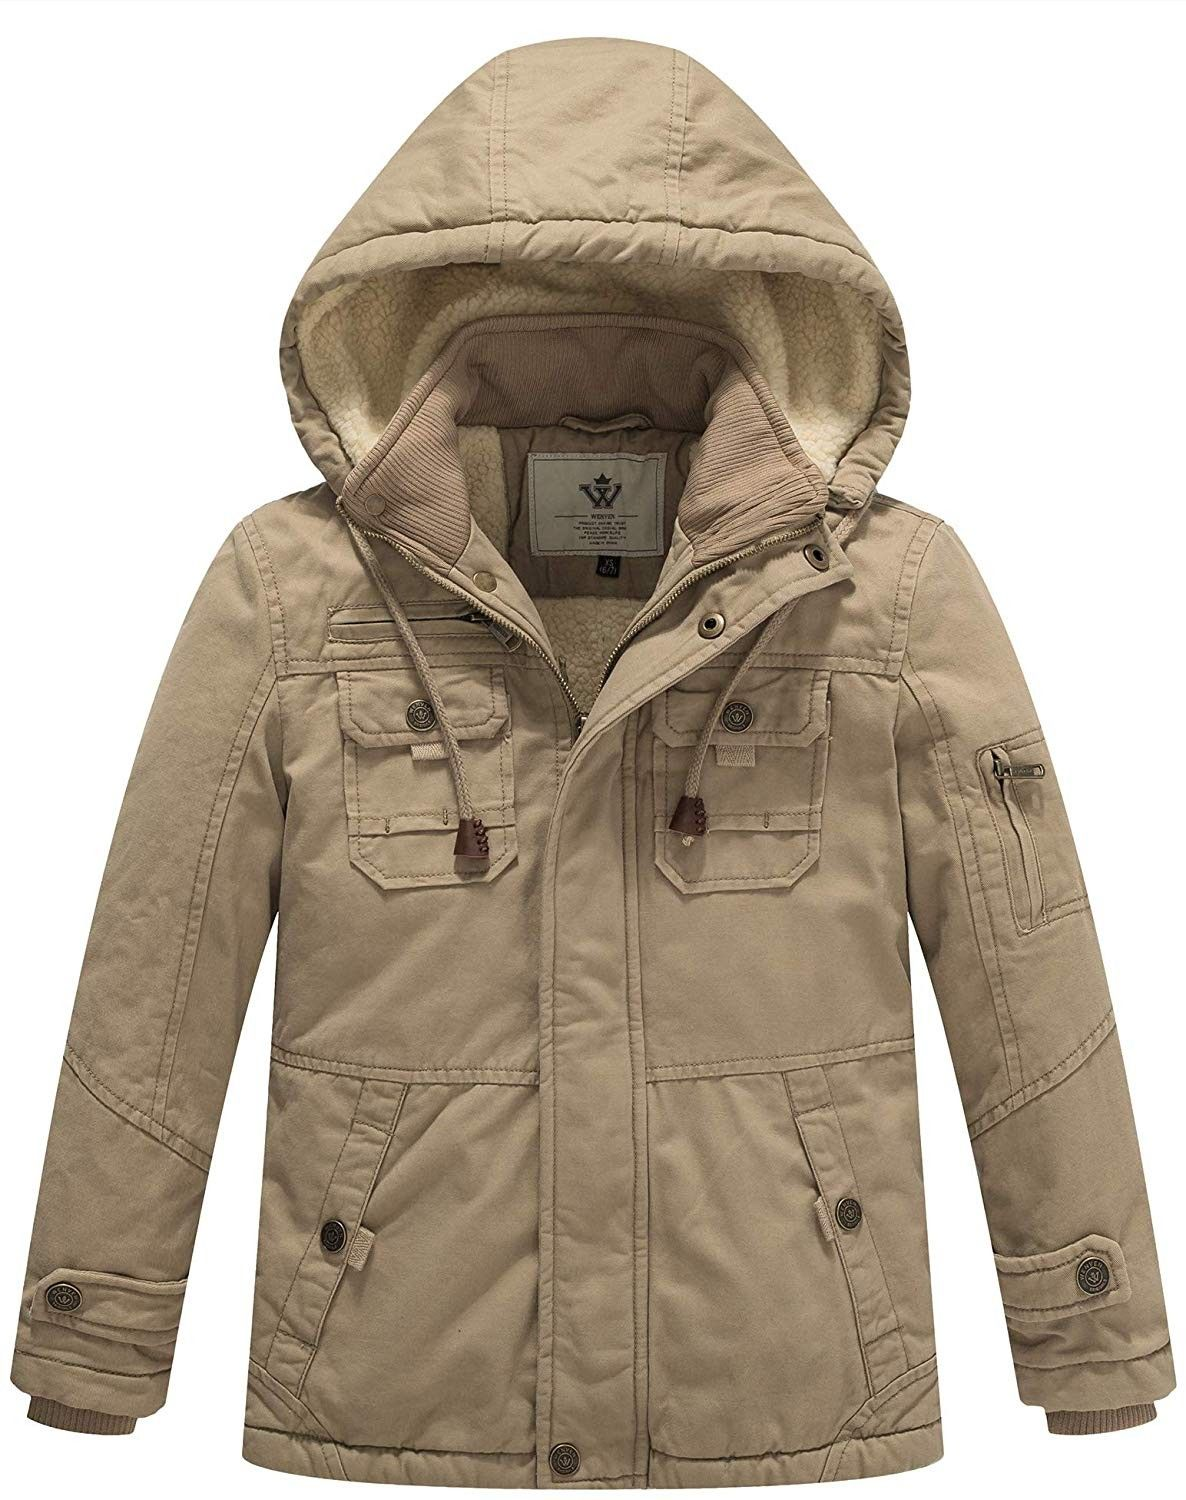 Boy S And Girl S Cotton Heavy Twill Hooded Jacket Khaki Ca18cg8t932 Hooded Jacket Jackets Cotton Twill Jacket [ 1500 x 1186 Pixel ]